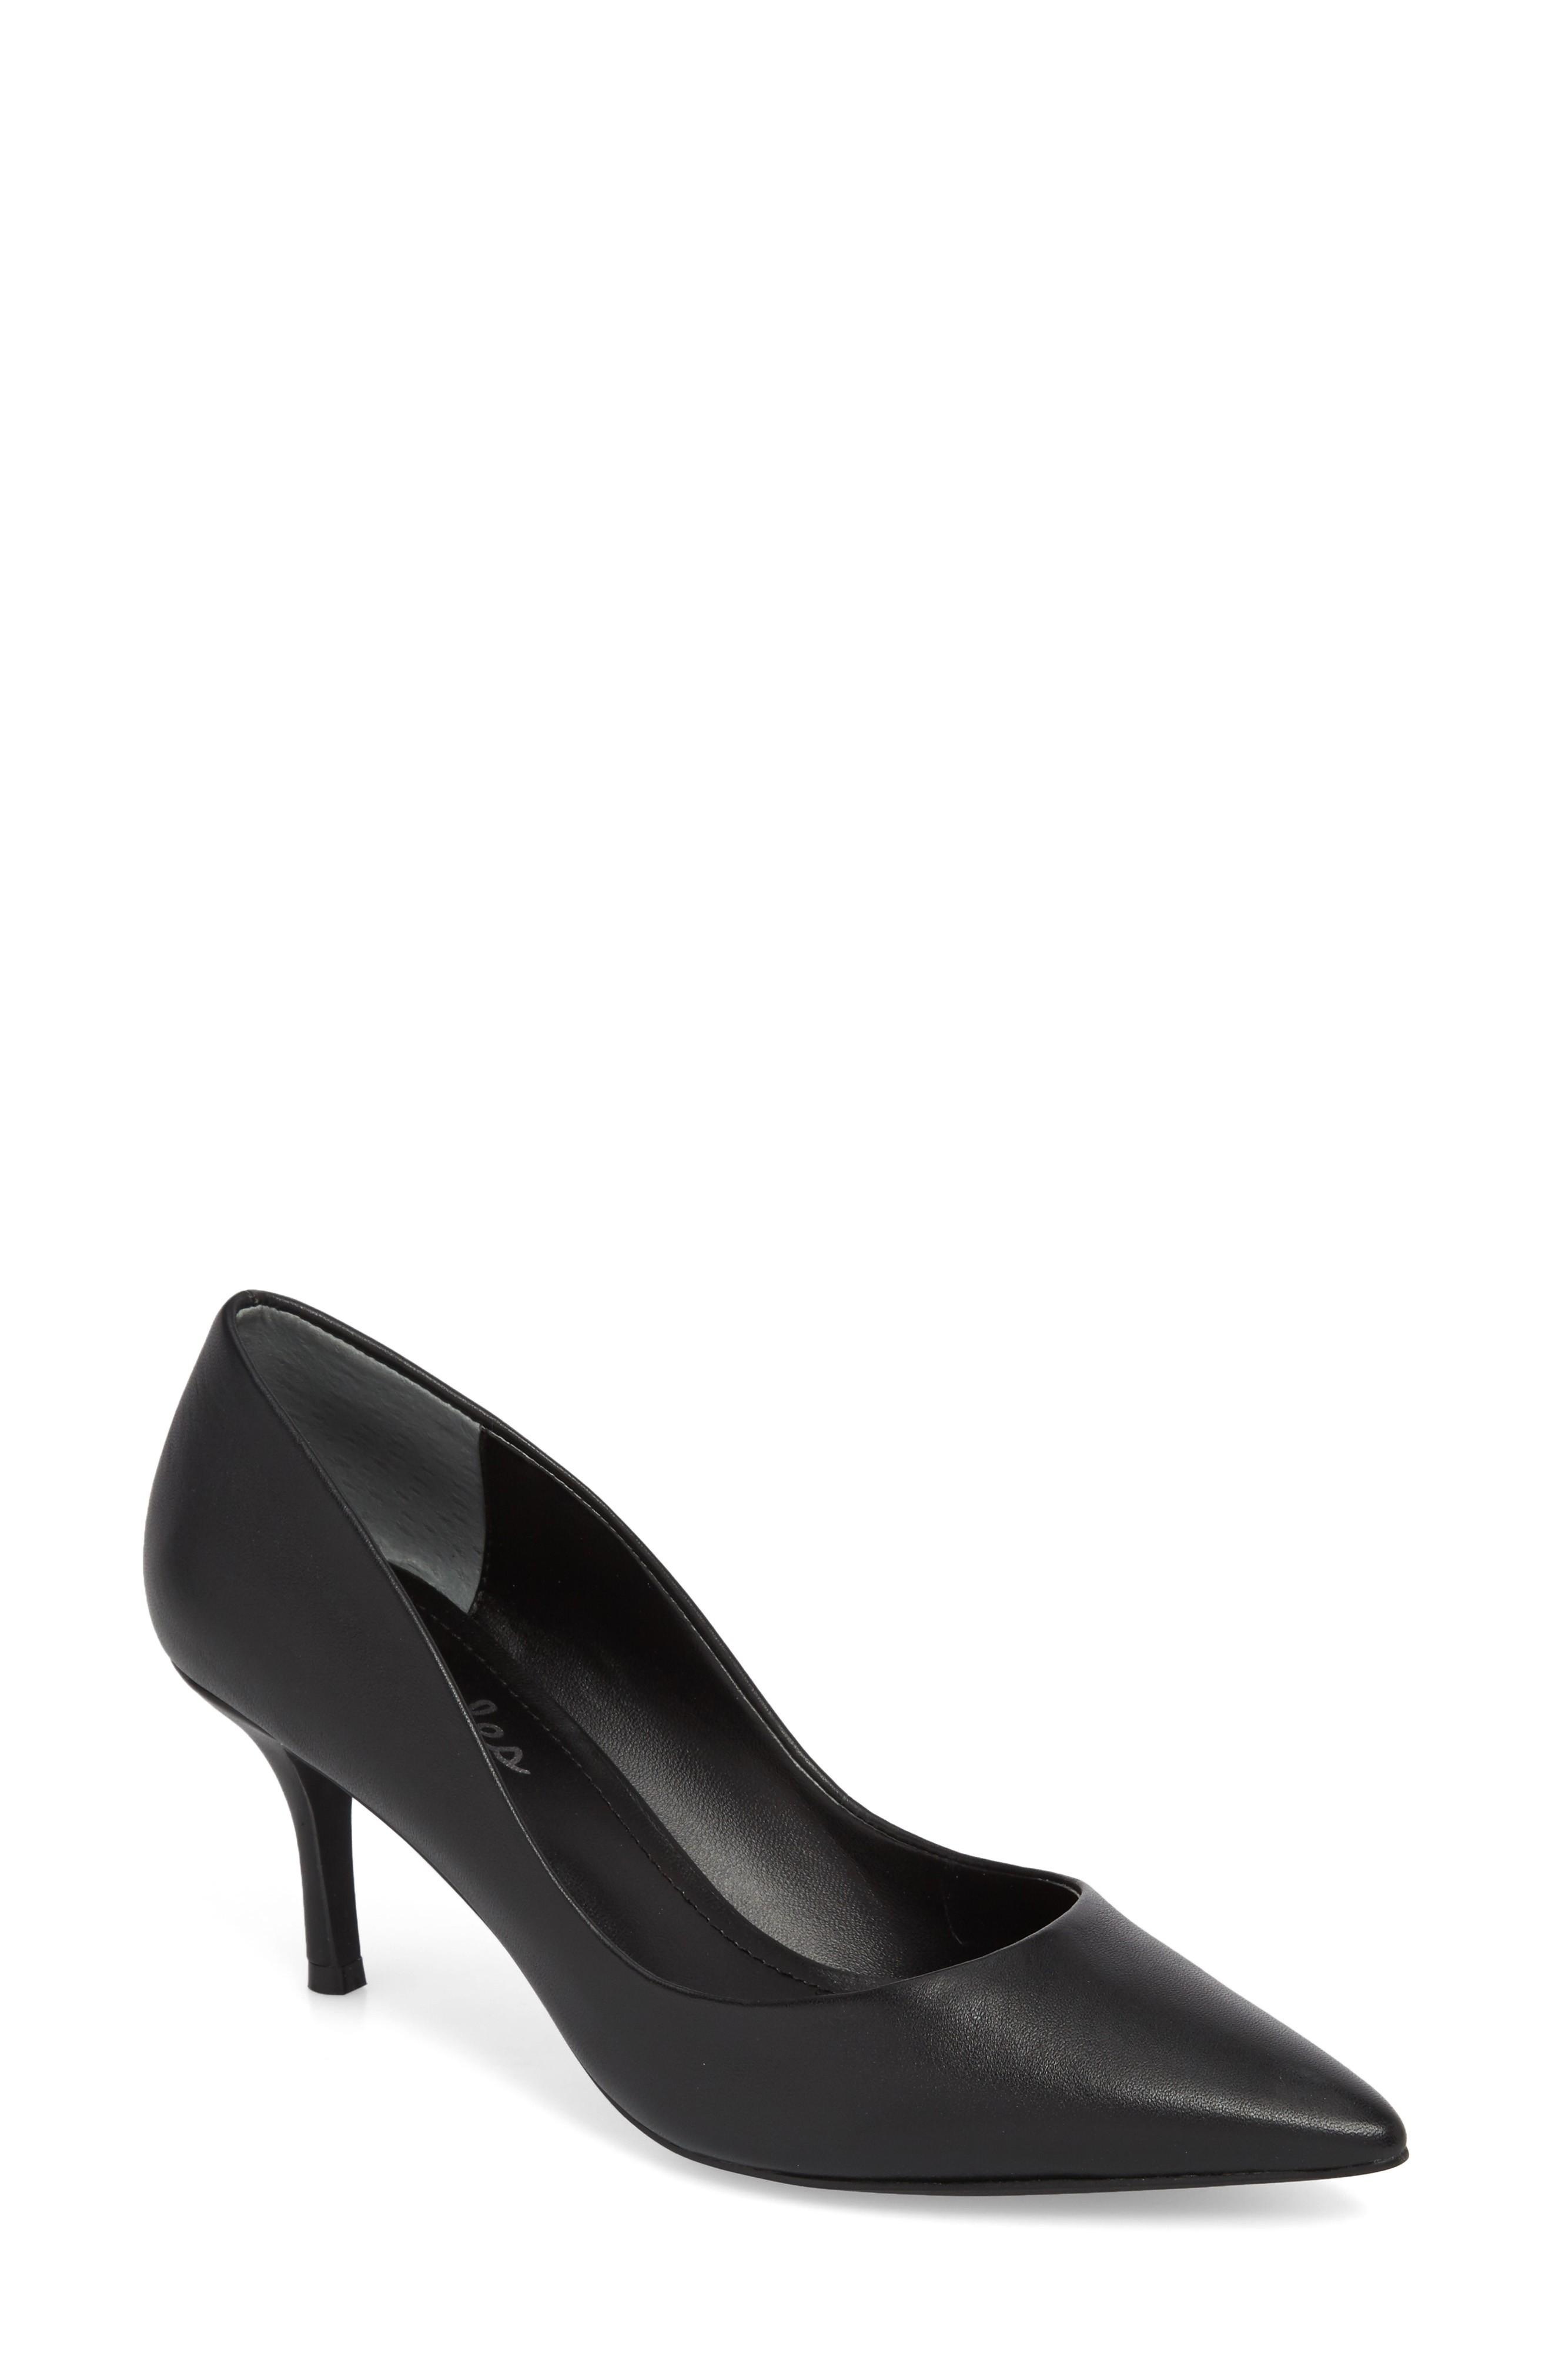 85a7398e196 A poised kitten heel lifts a pointy-toe pump that s perfect for any  occasion. Style Name  Charles By Charles David Addie Pump (Women).